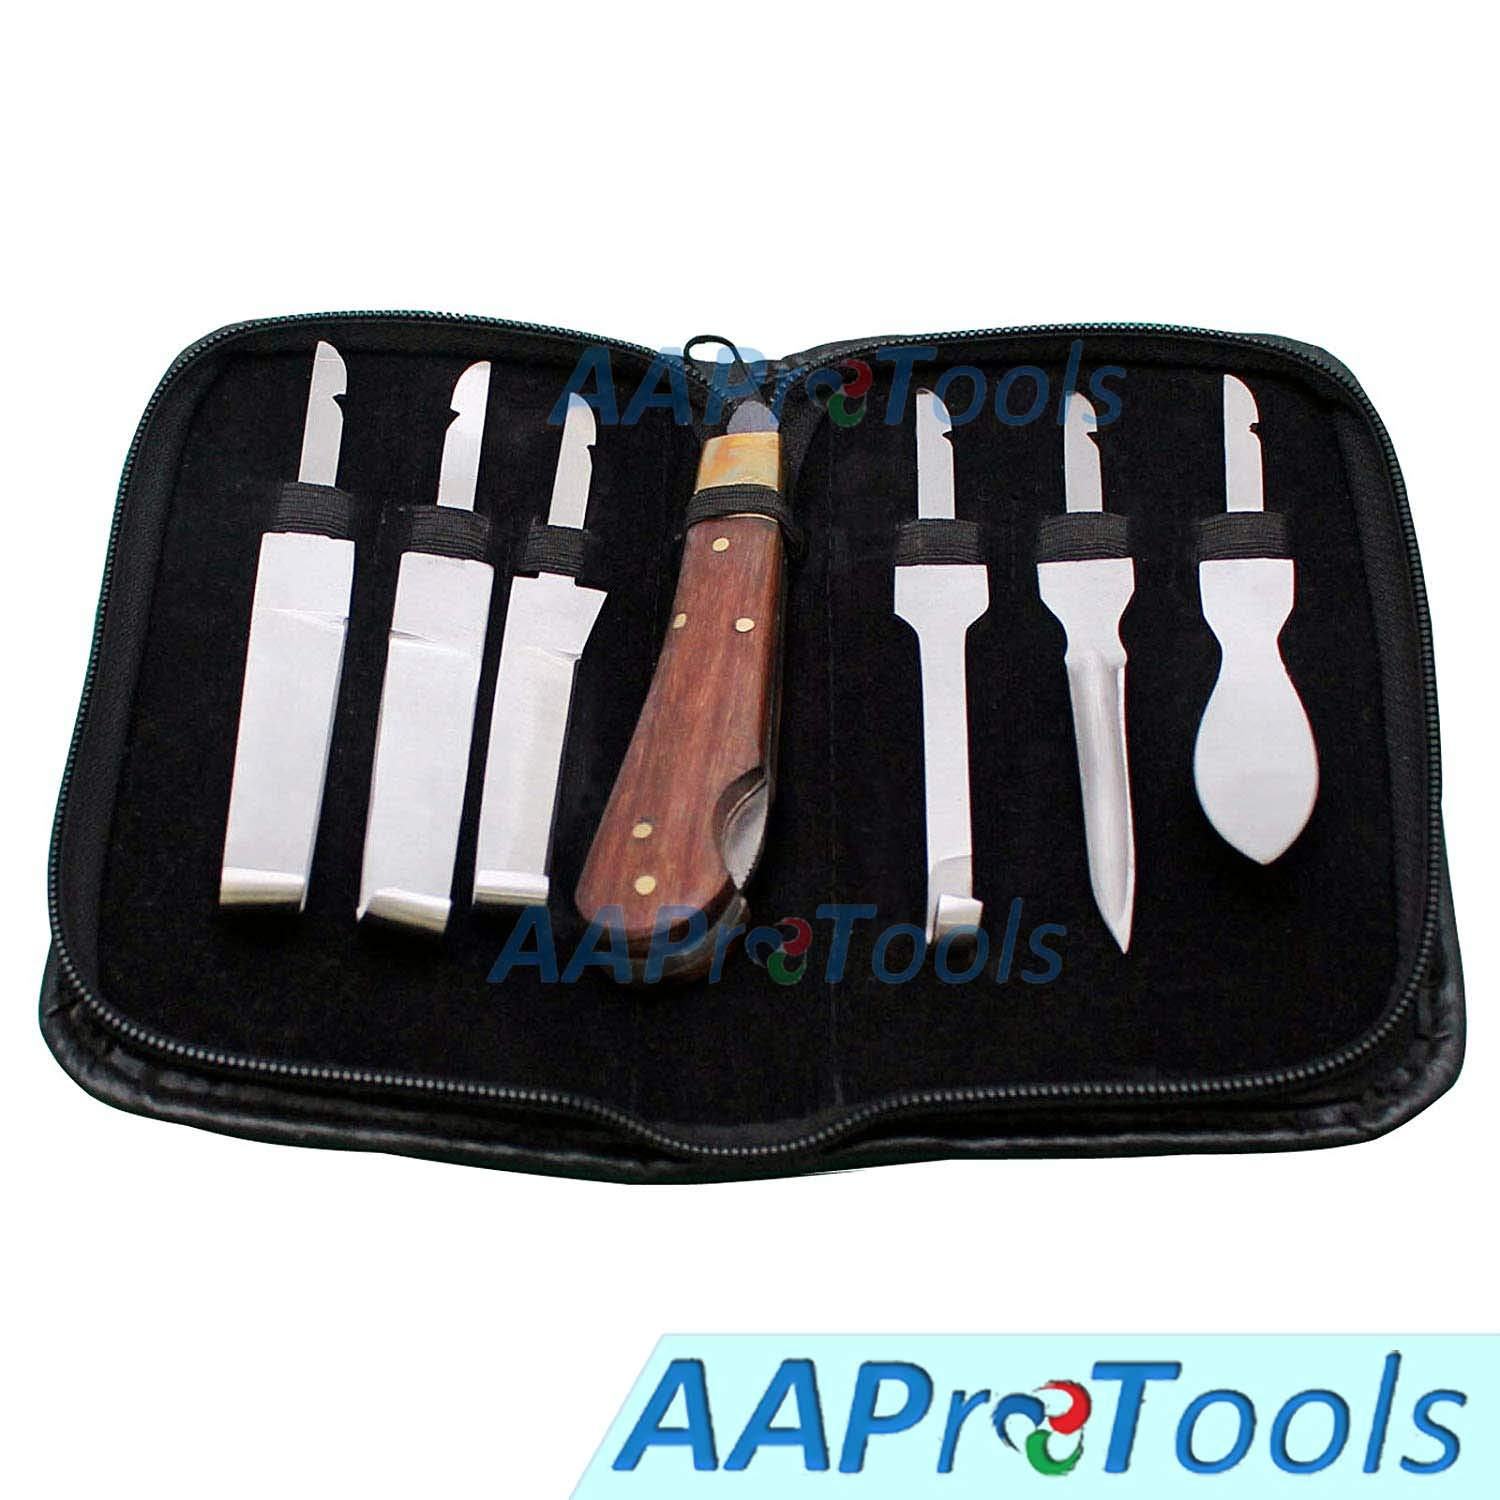 AAProTools Farrier Hoof Knife Kit Set Premium Quality Set of Knives + Carry Pouch by AAProTools